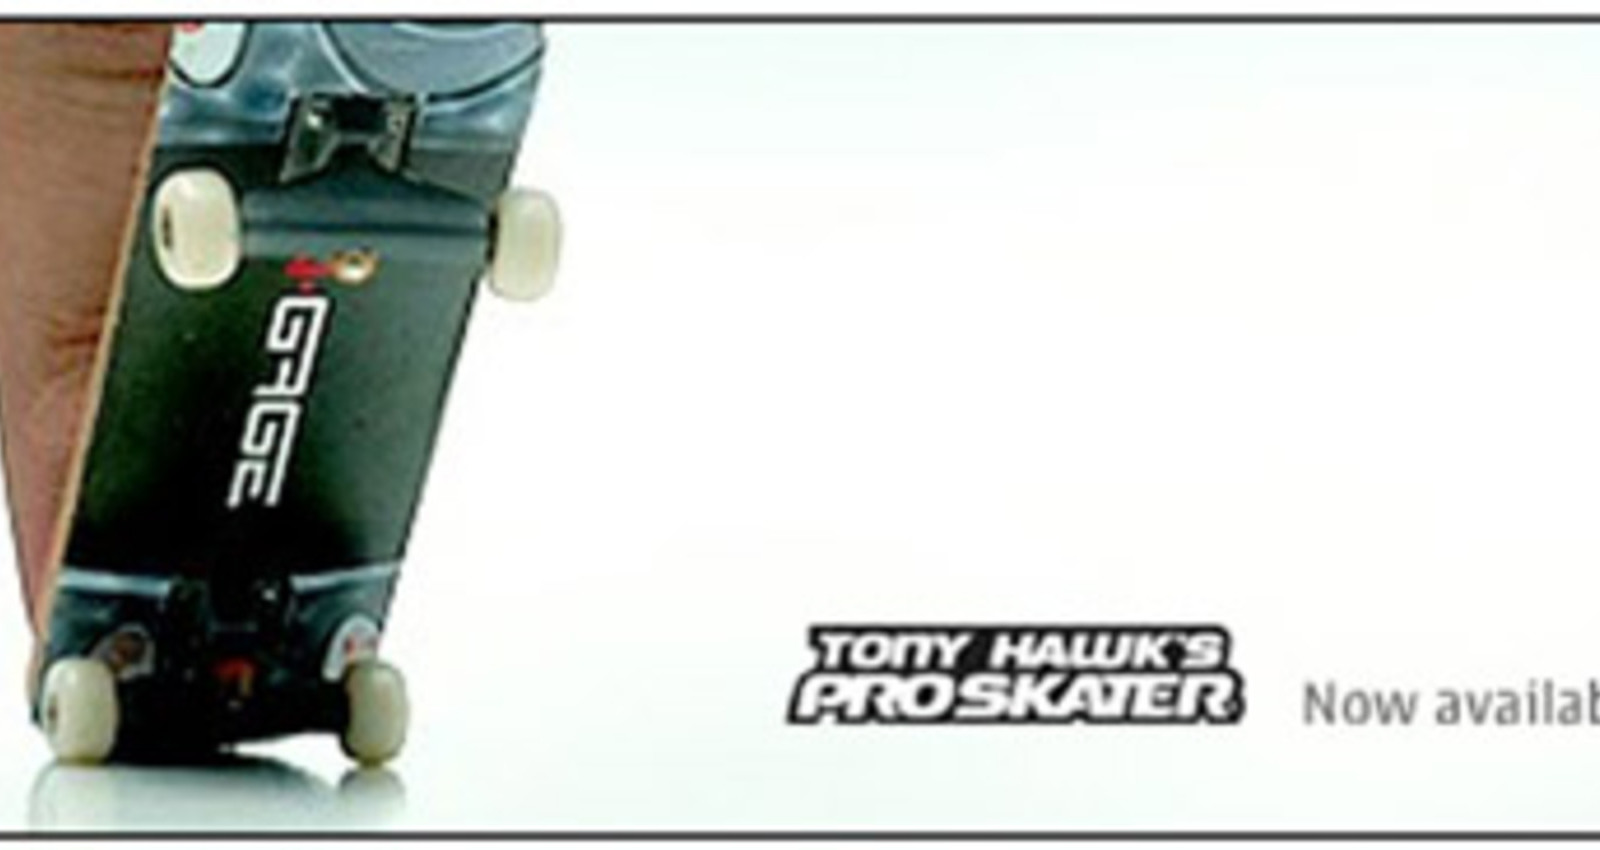 Ngage - Tony Hawk